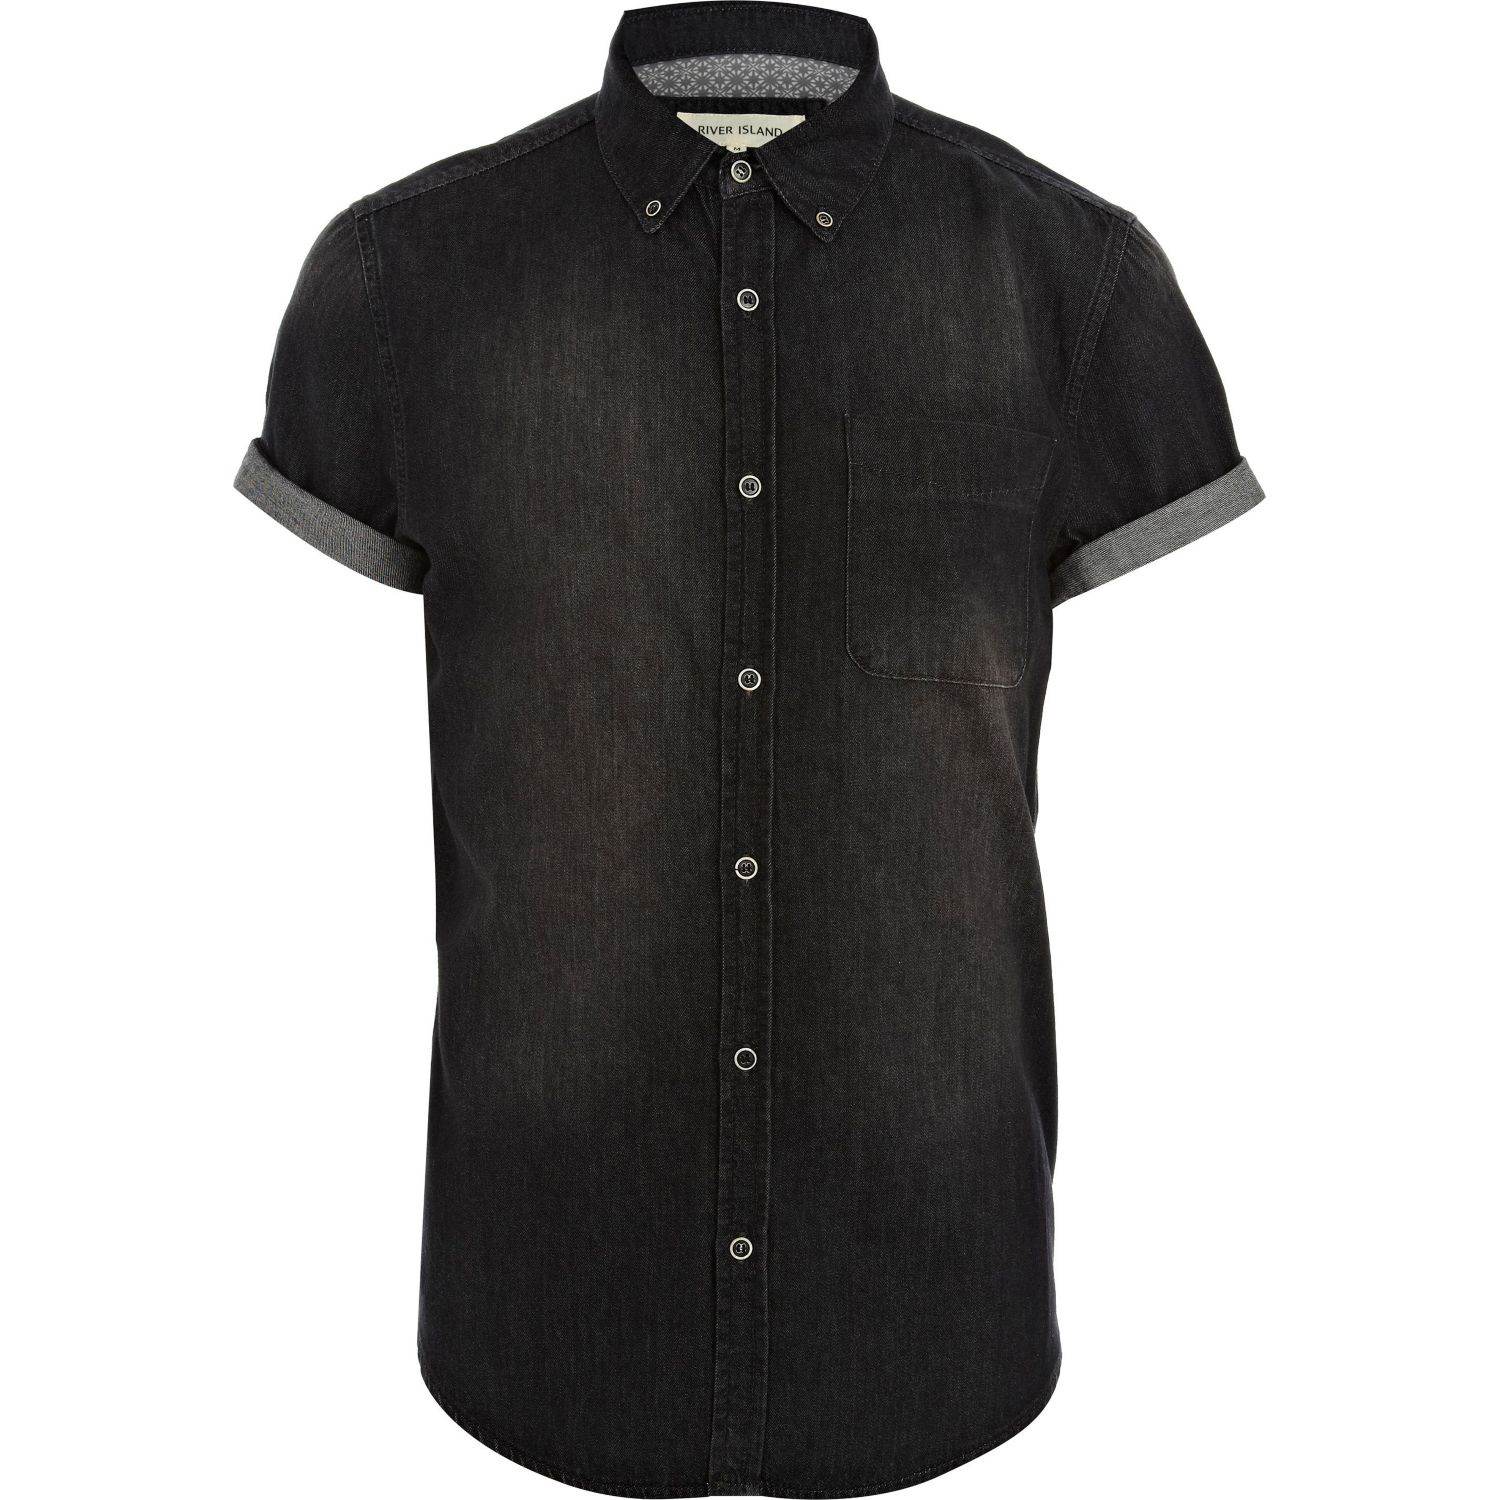 Find Men's Clearance Short Sleeve Shirts at distrib-wjmx2fn9.ga Enjoy free shipping and returns with NikePlus. THE BLACK AND WHITE TREND. BEST SELLERS. SALE. SHOES. SNKRS Launch Calendar; Lifestyle; Running; Men's Short Sleeve Surf Shirt. $40 $ Prev. Next. 2 Colors. Hurley Core Rolling Waves. Men's T-Shirt. $22 $ Prev. Next.